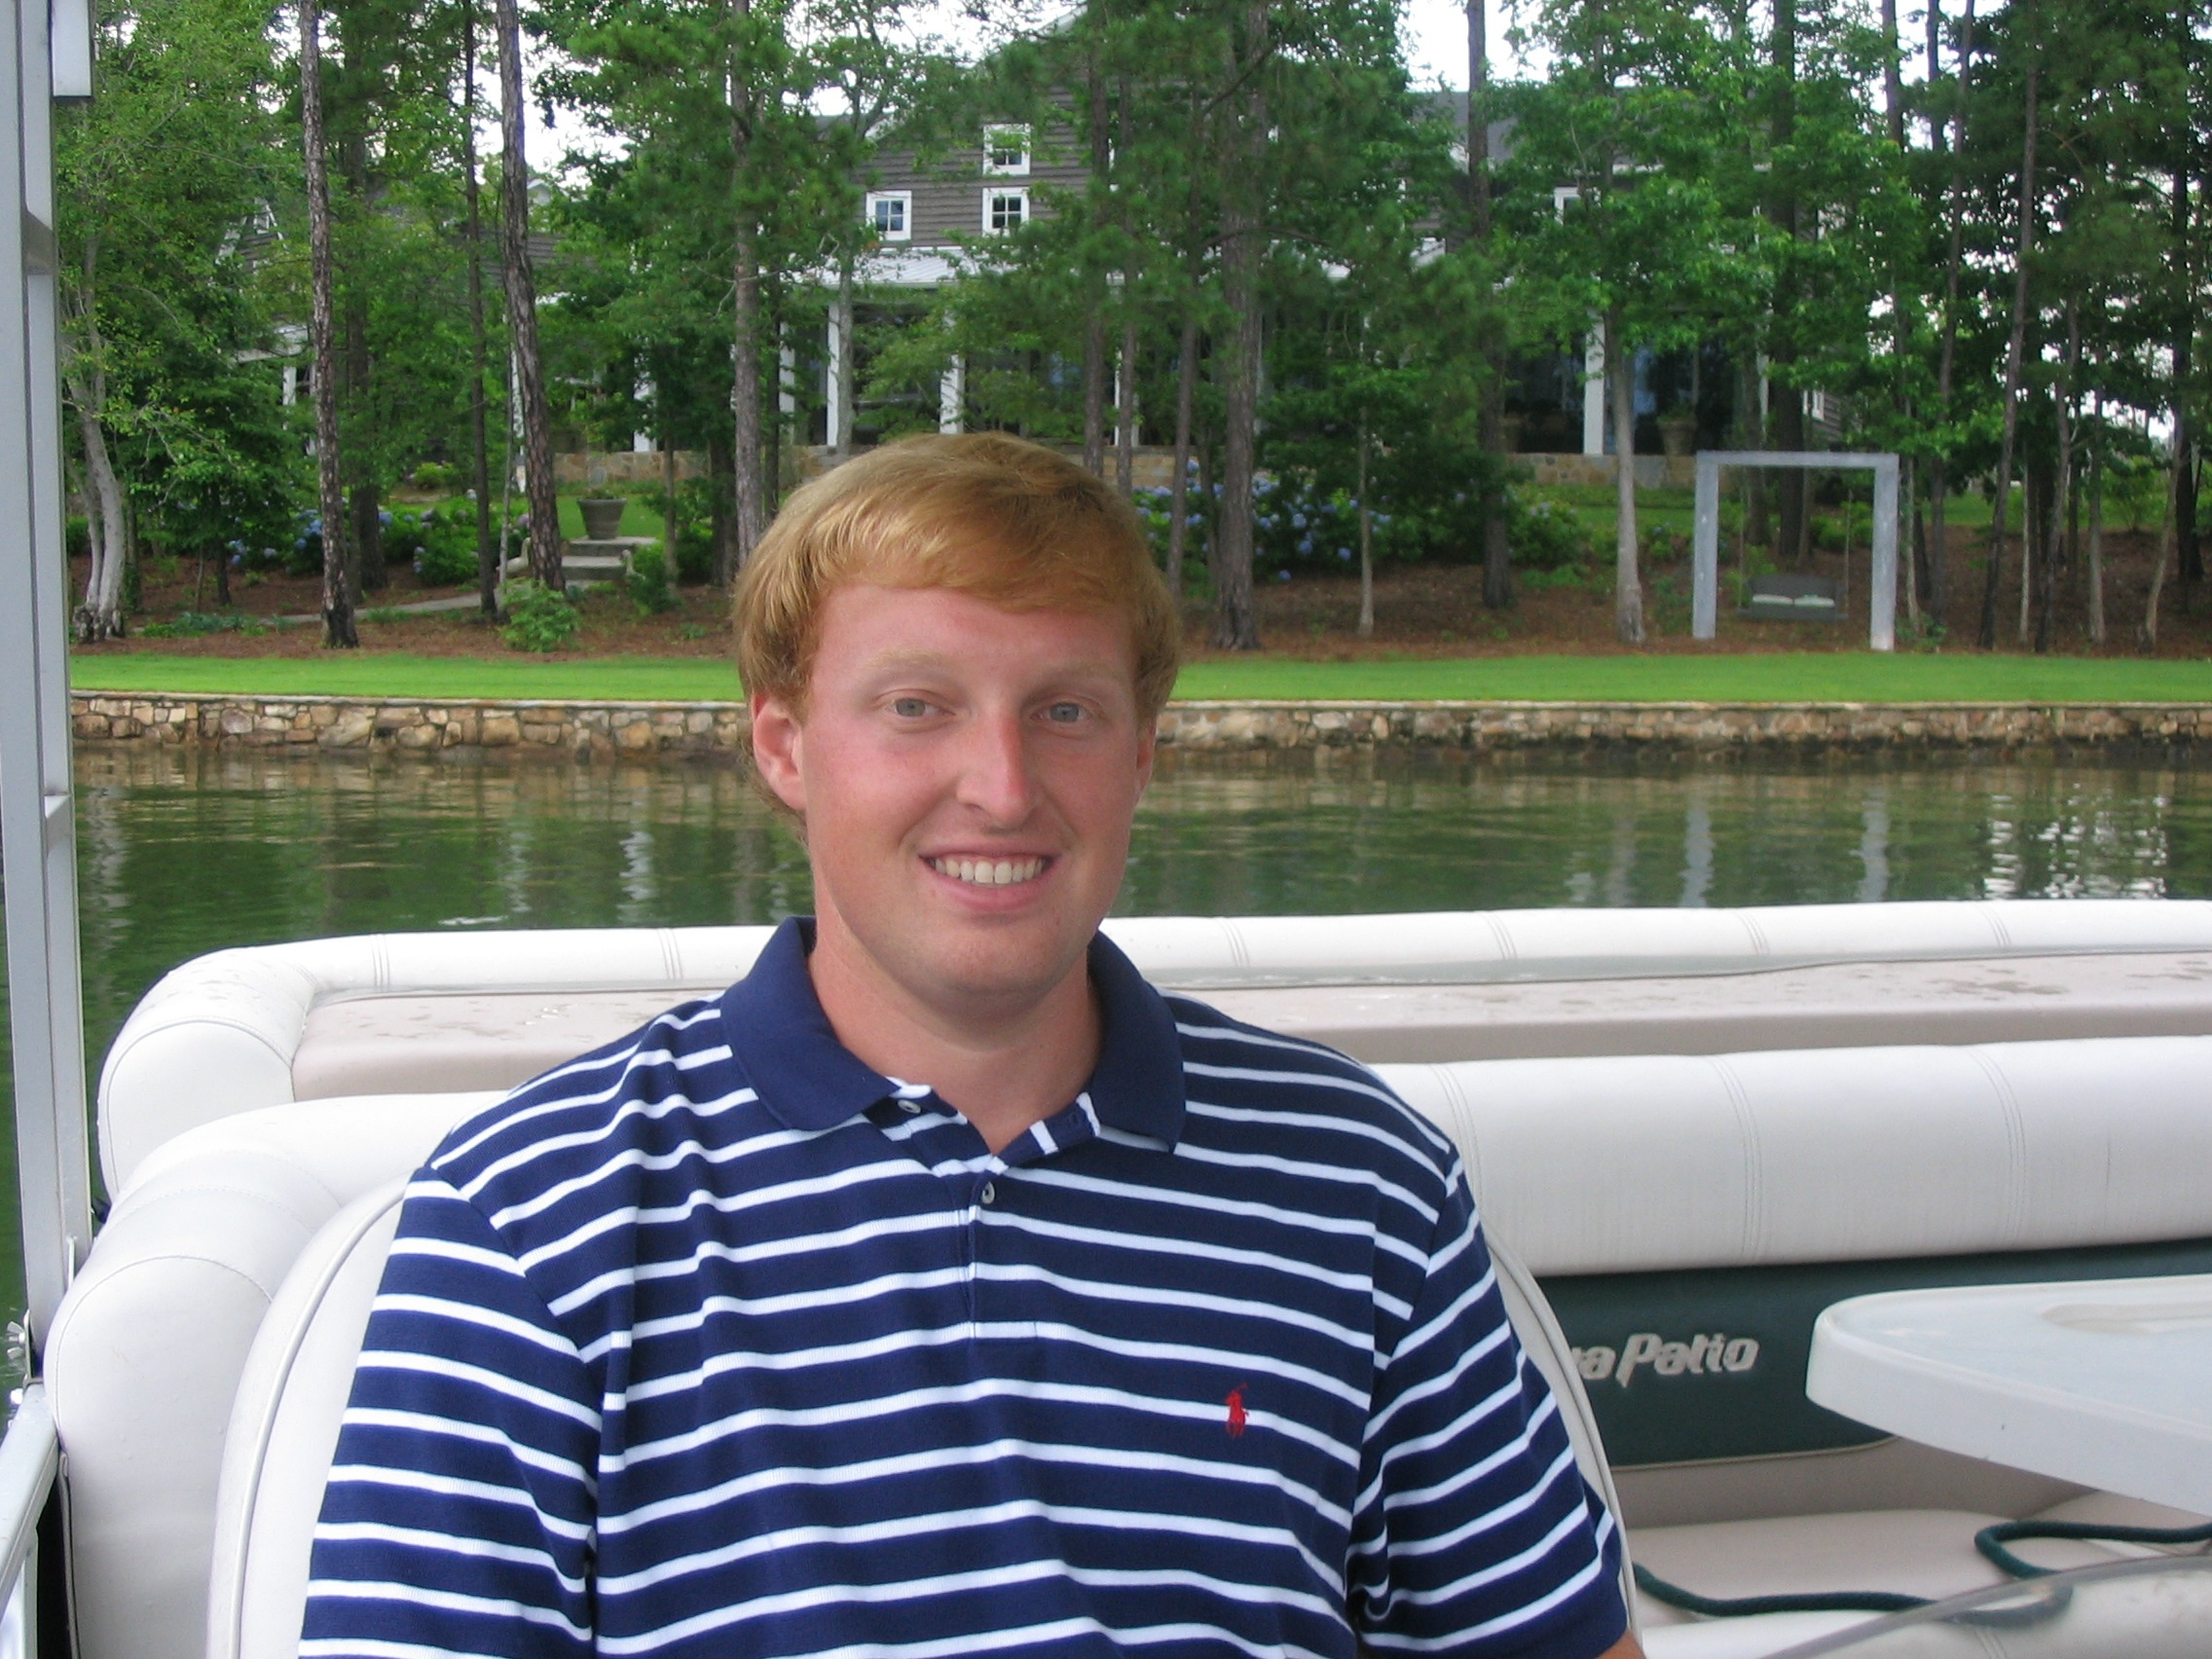 Boat Rental, Boat Repair, Charters, Marina - Martin Lake, Alabama